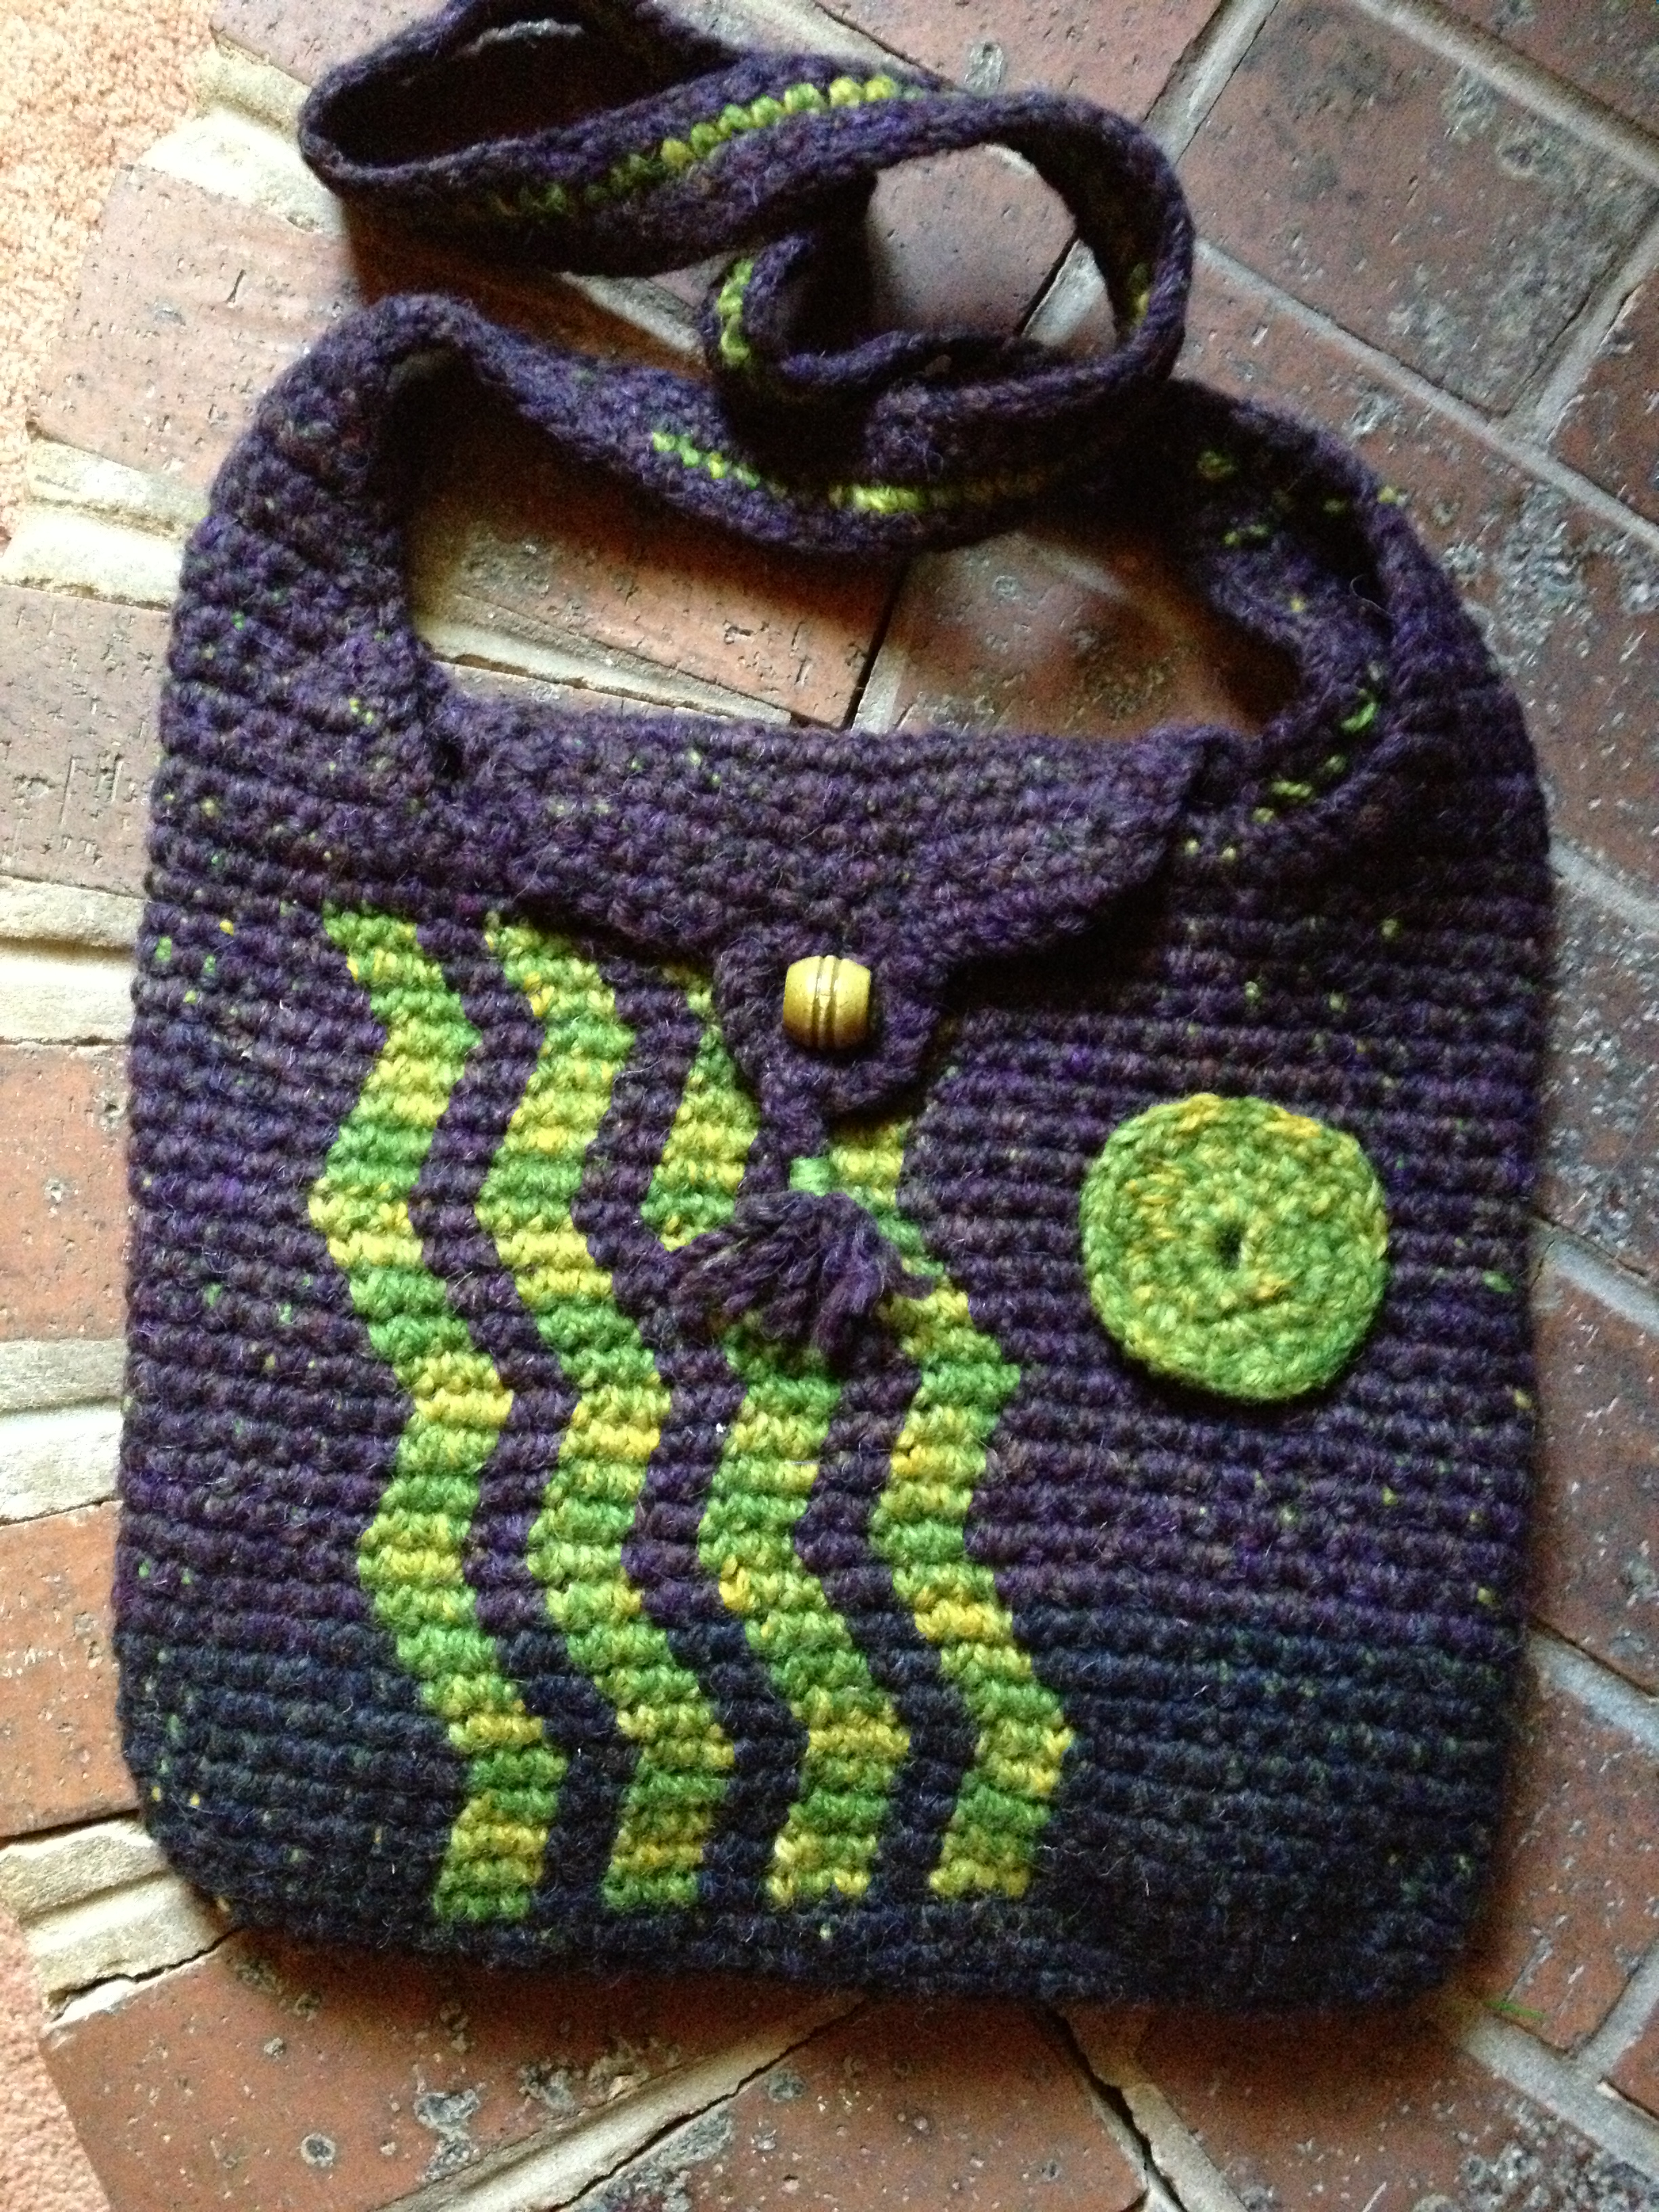 Tapestry Crochet Bag : MORE TAPESTRY CROCHET BAG DESIGNS TAPESTRY CROCHET